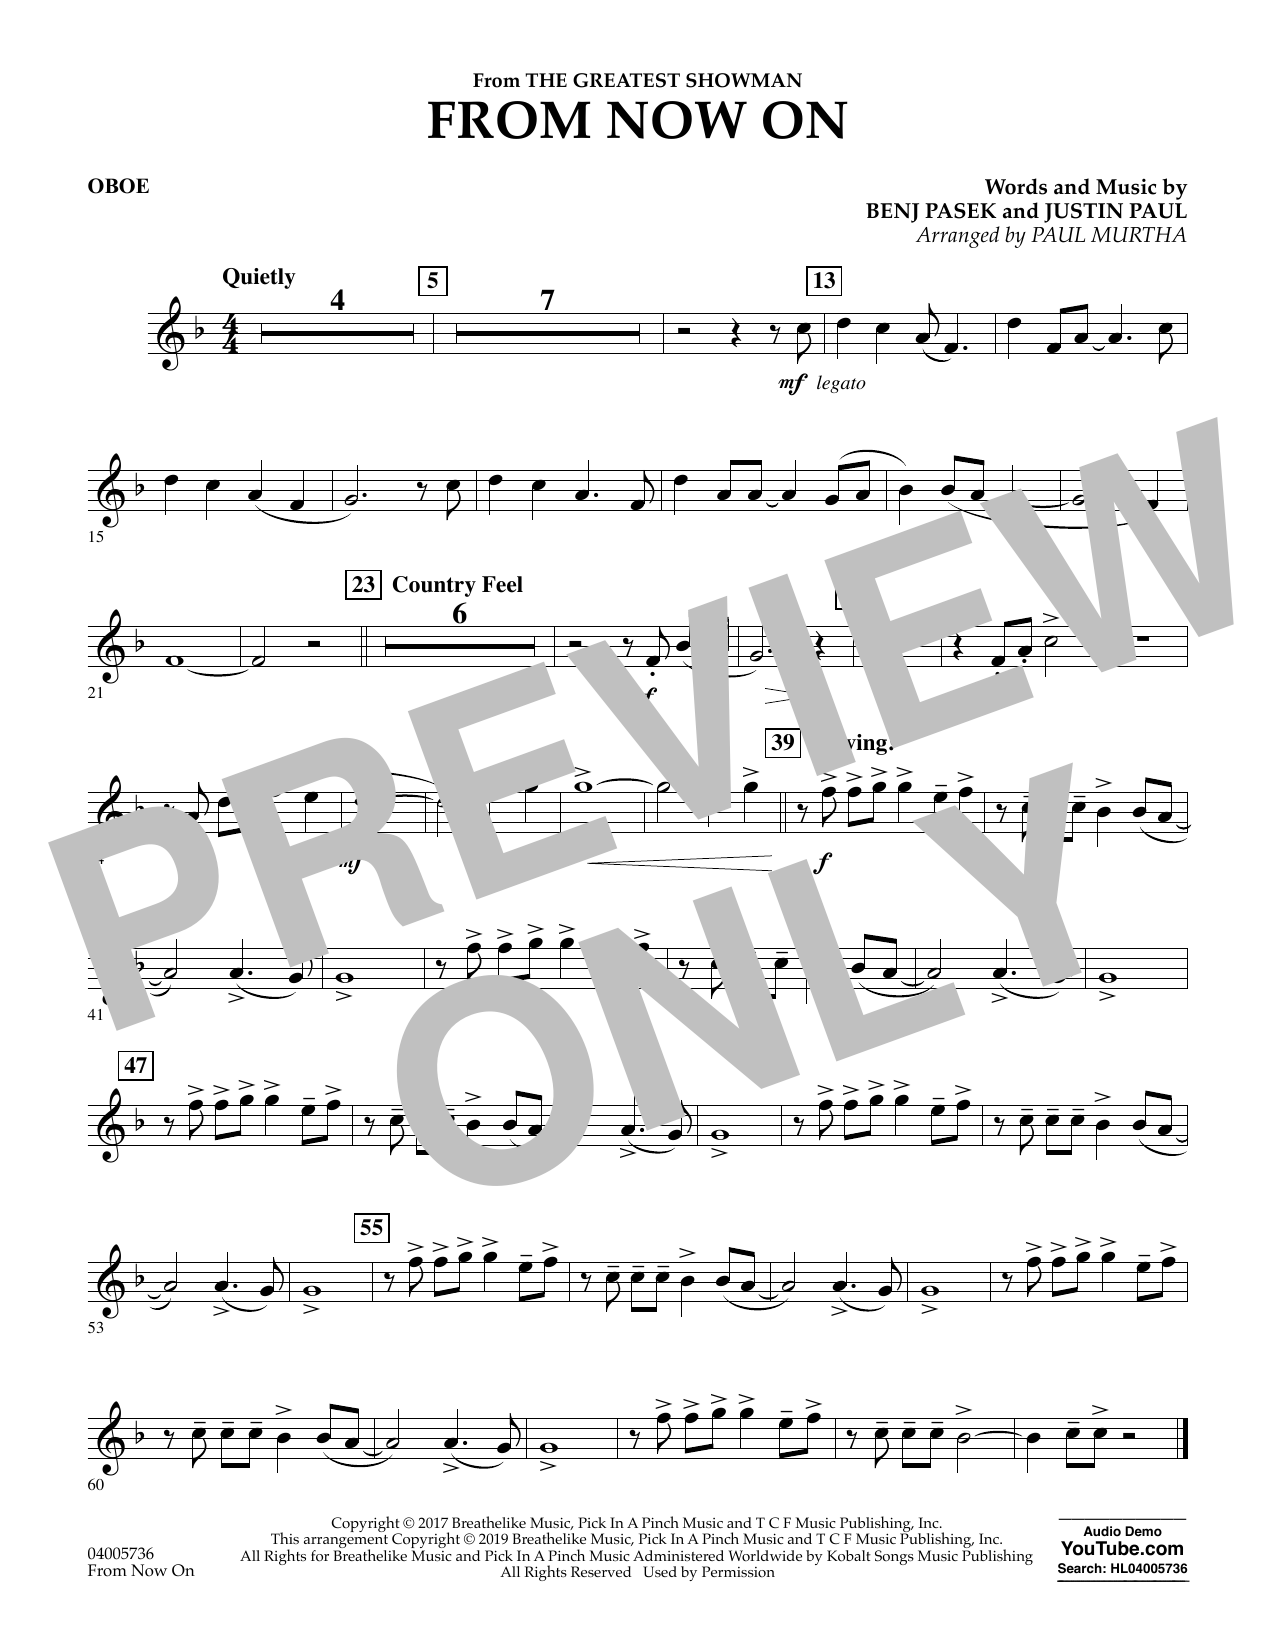 From Now On (from The Greatest Showman) (arr. Paul Murtha) - Oboe (Concert Band)